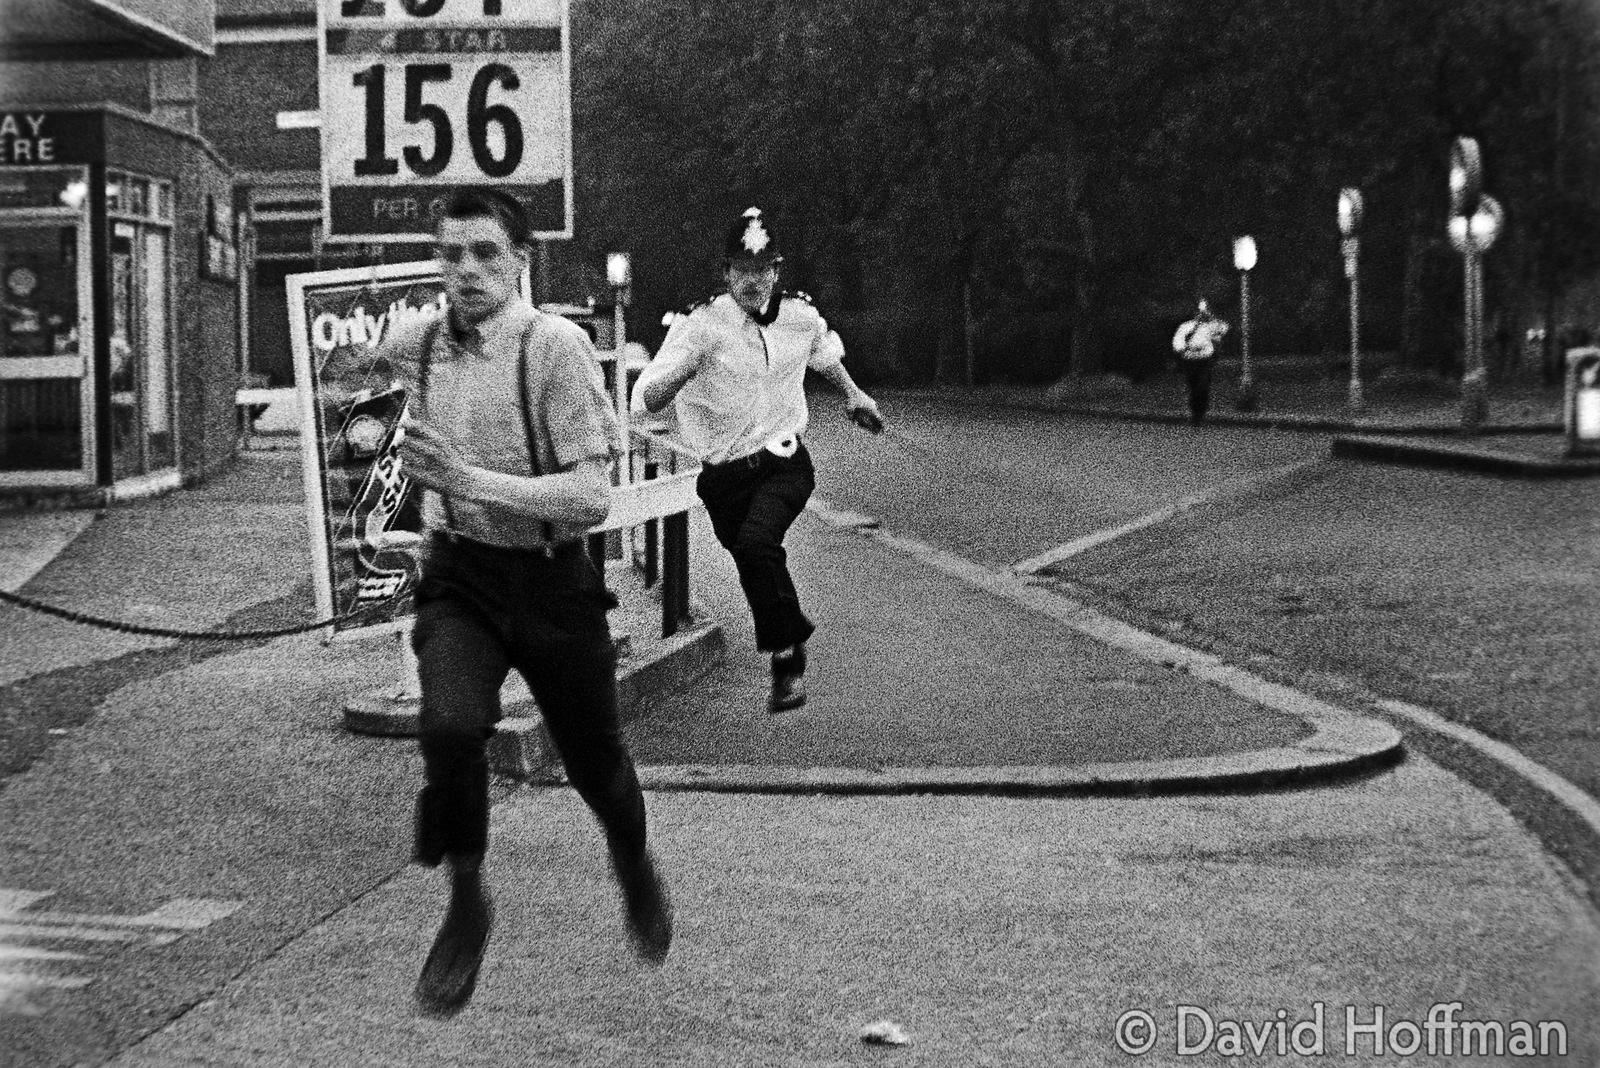 Police chase skinhead during rioting in Wood Green, July 1981.